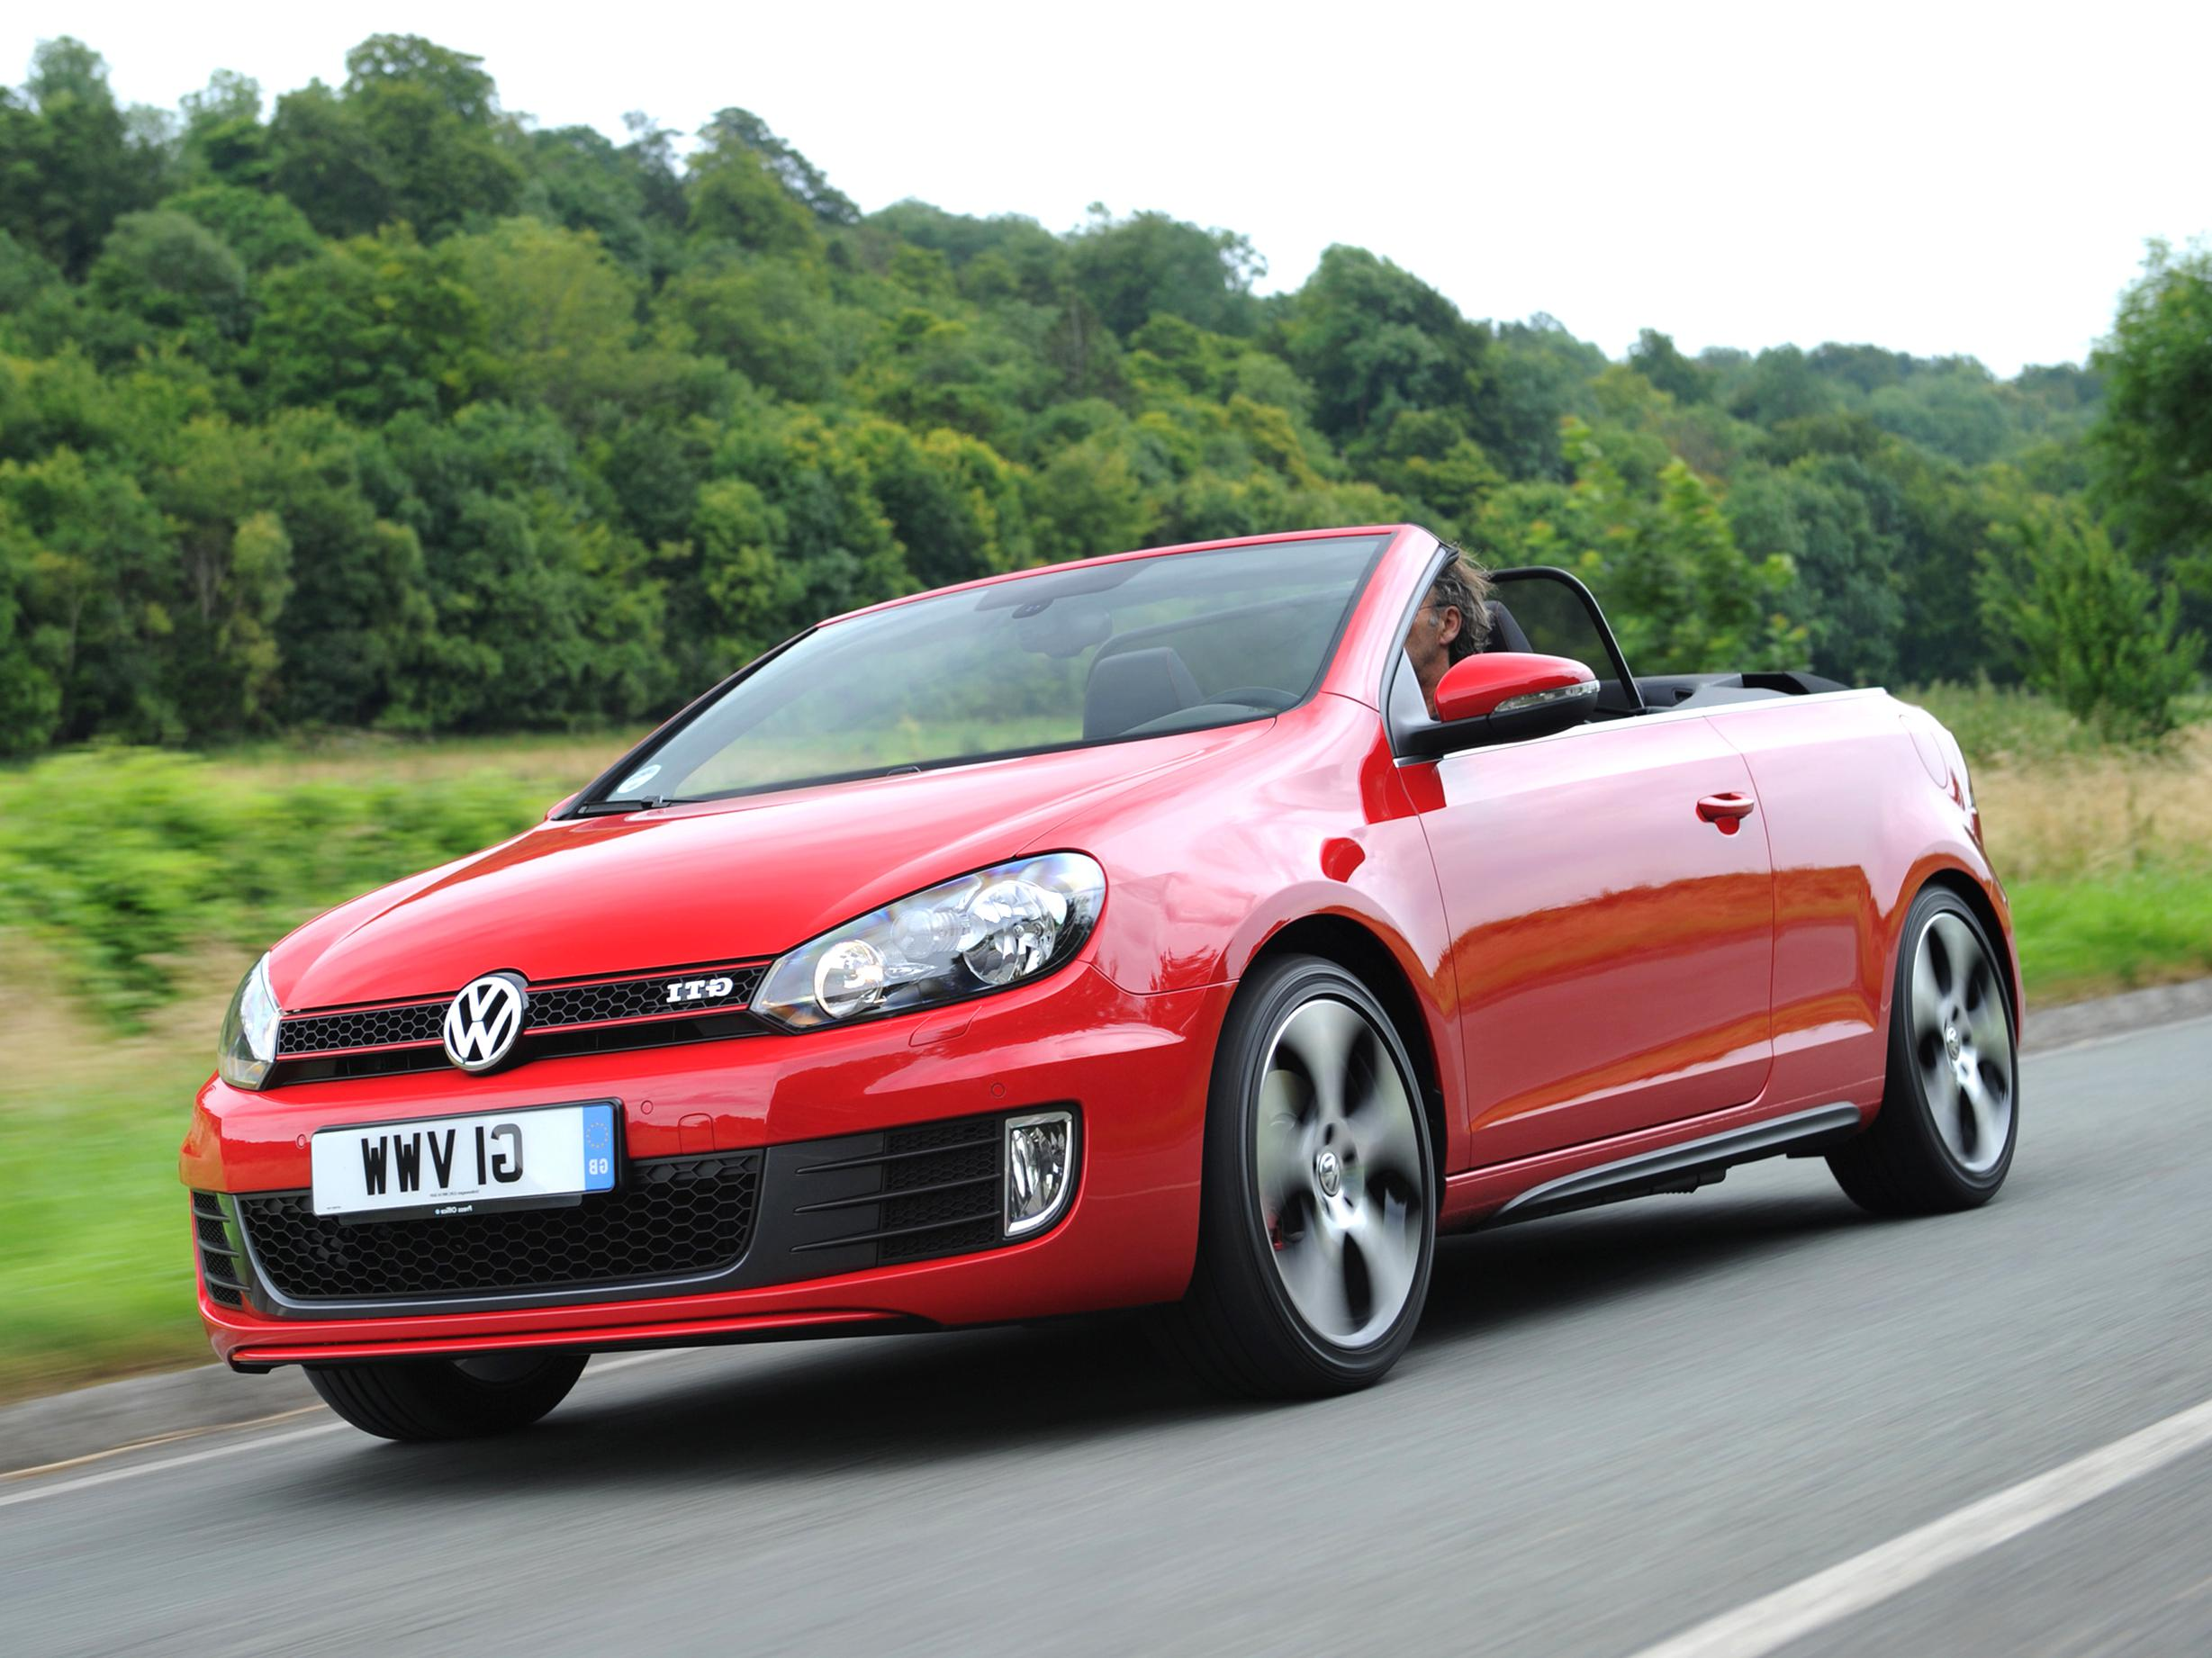 golf gti cabriolet d'occasion